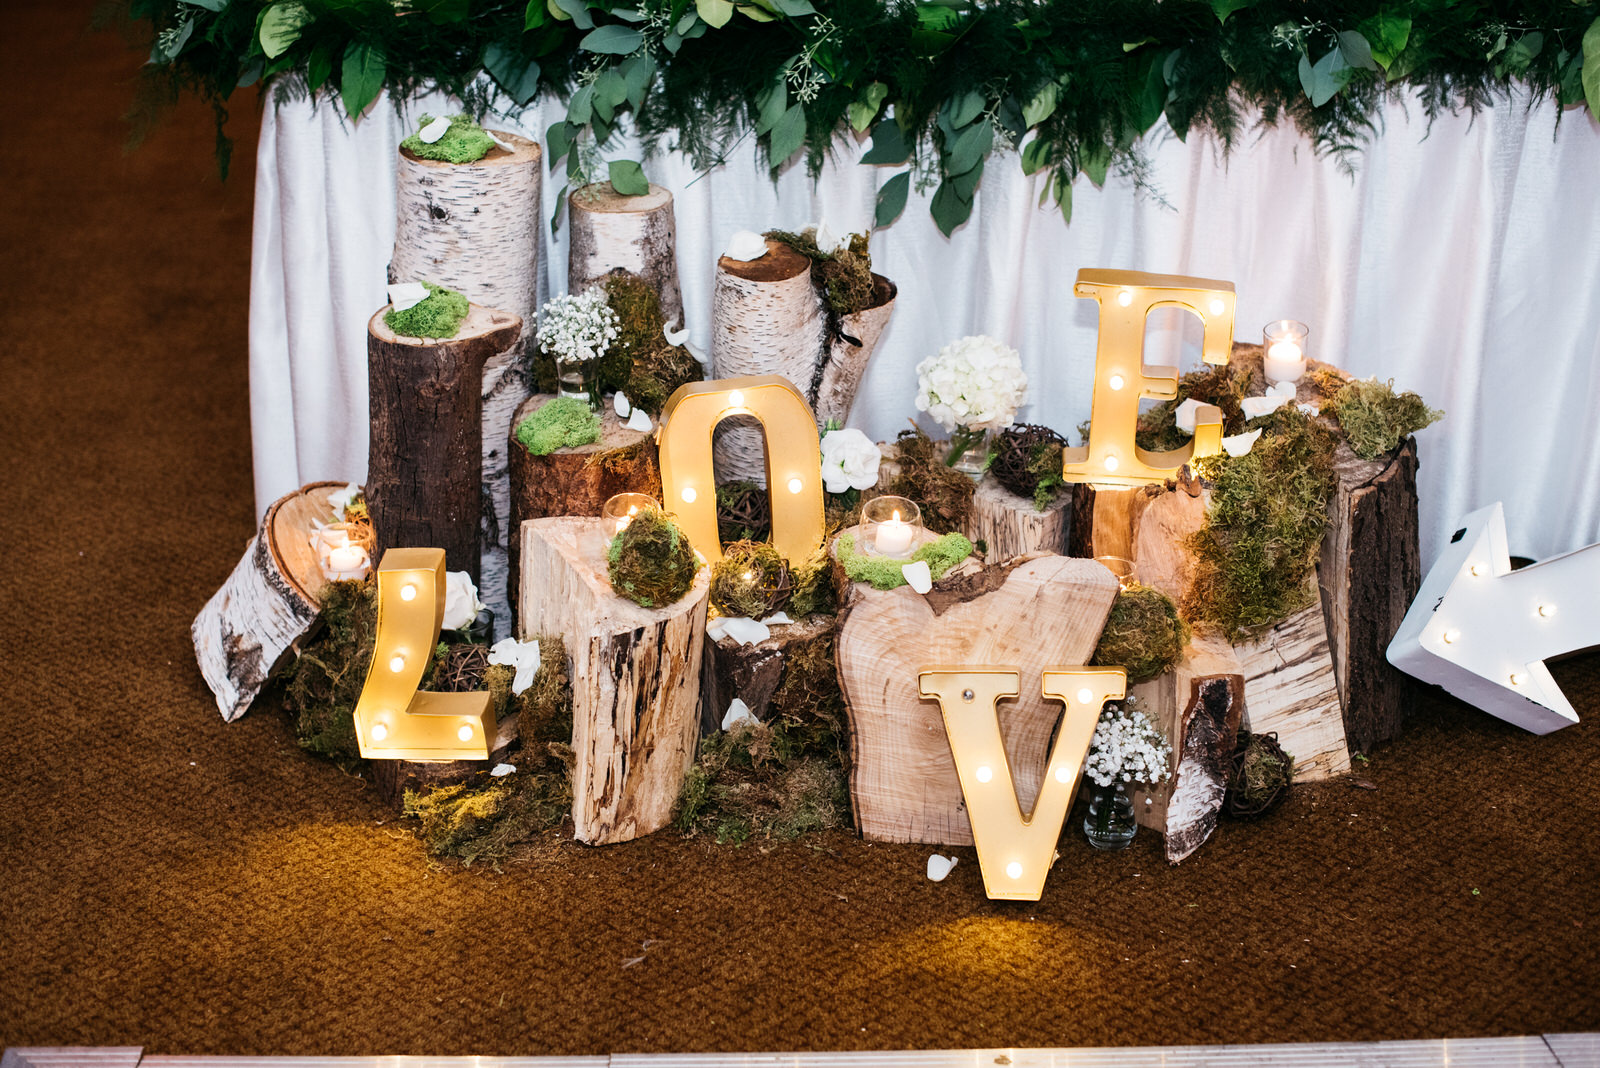 hilton_garden_inn_southpointe_pittsburgh_weddings_75.jpg